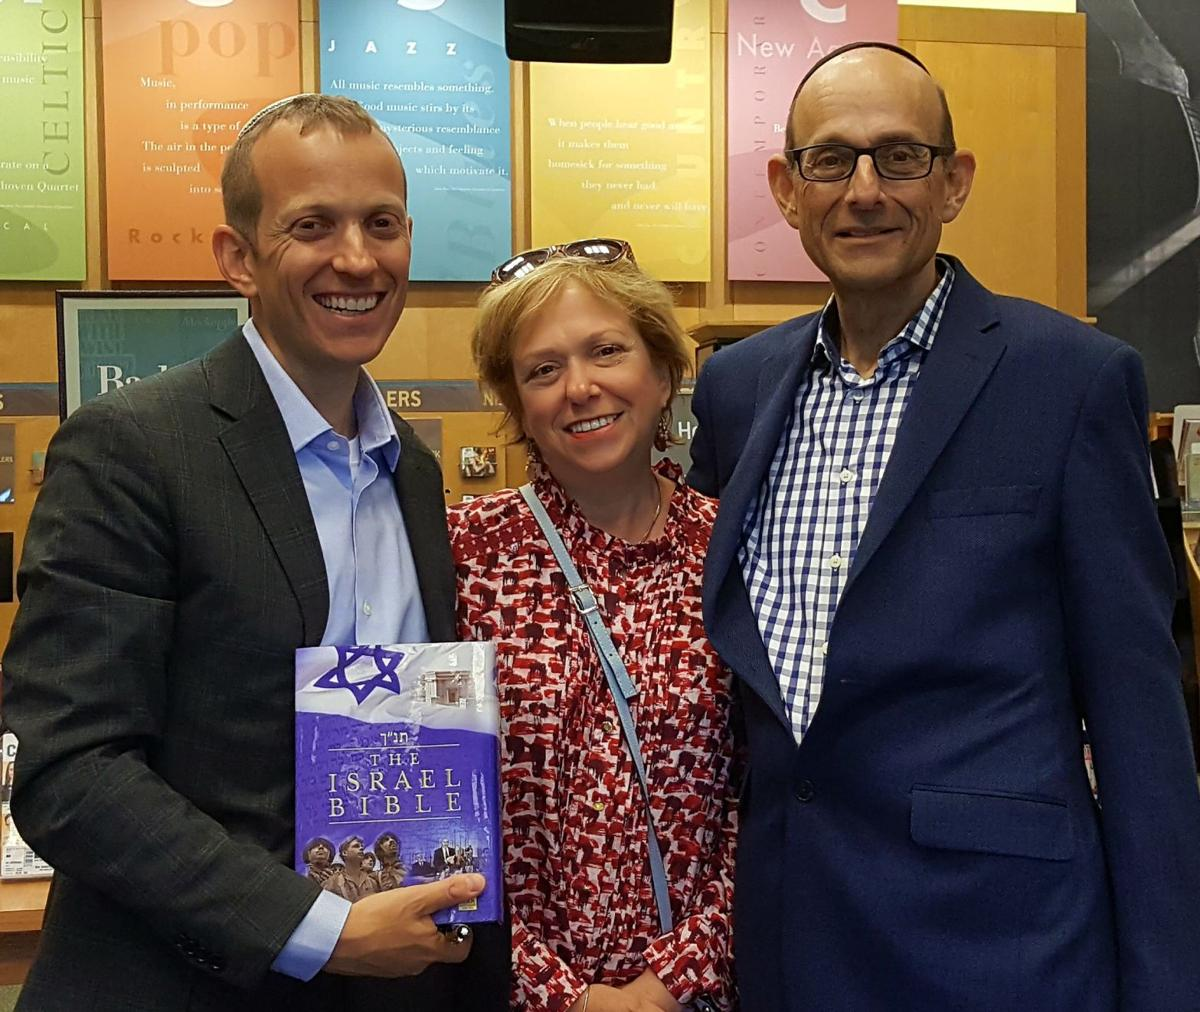 """Rabbi Tuly, Chanita and Michael Weisz at the book launch of """"The Israel Bible"""""""